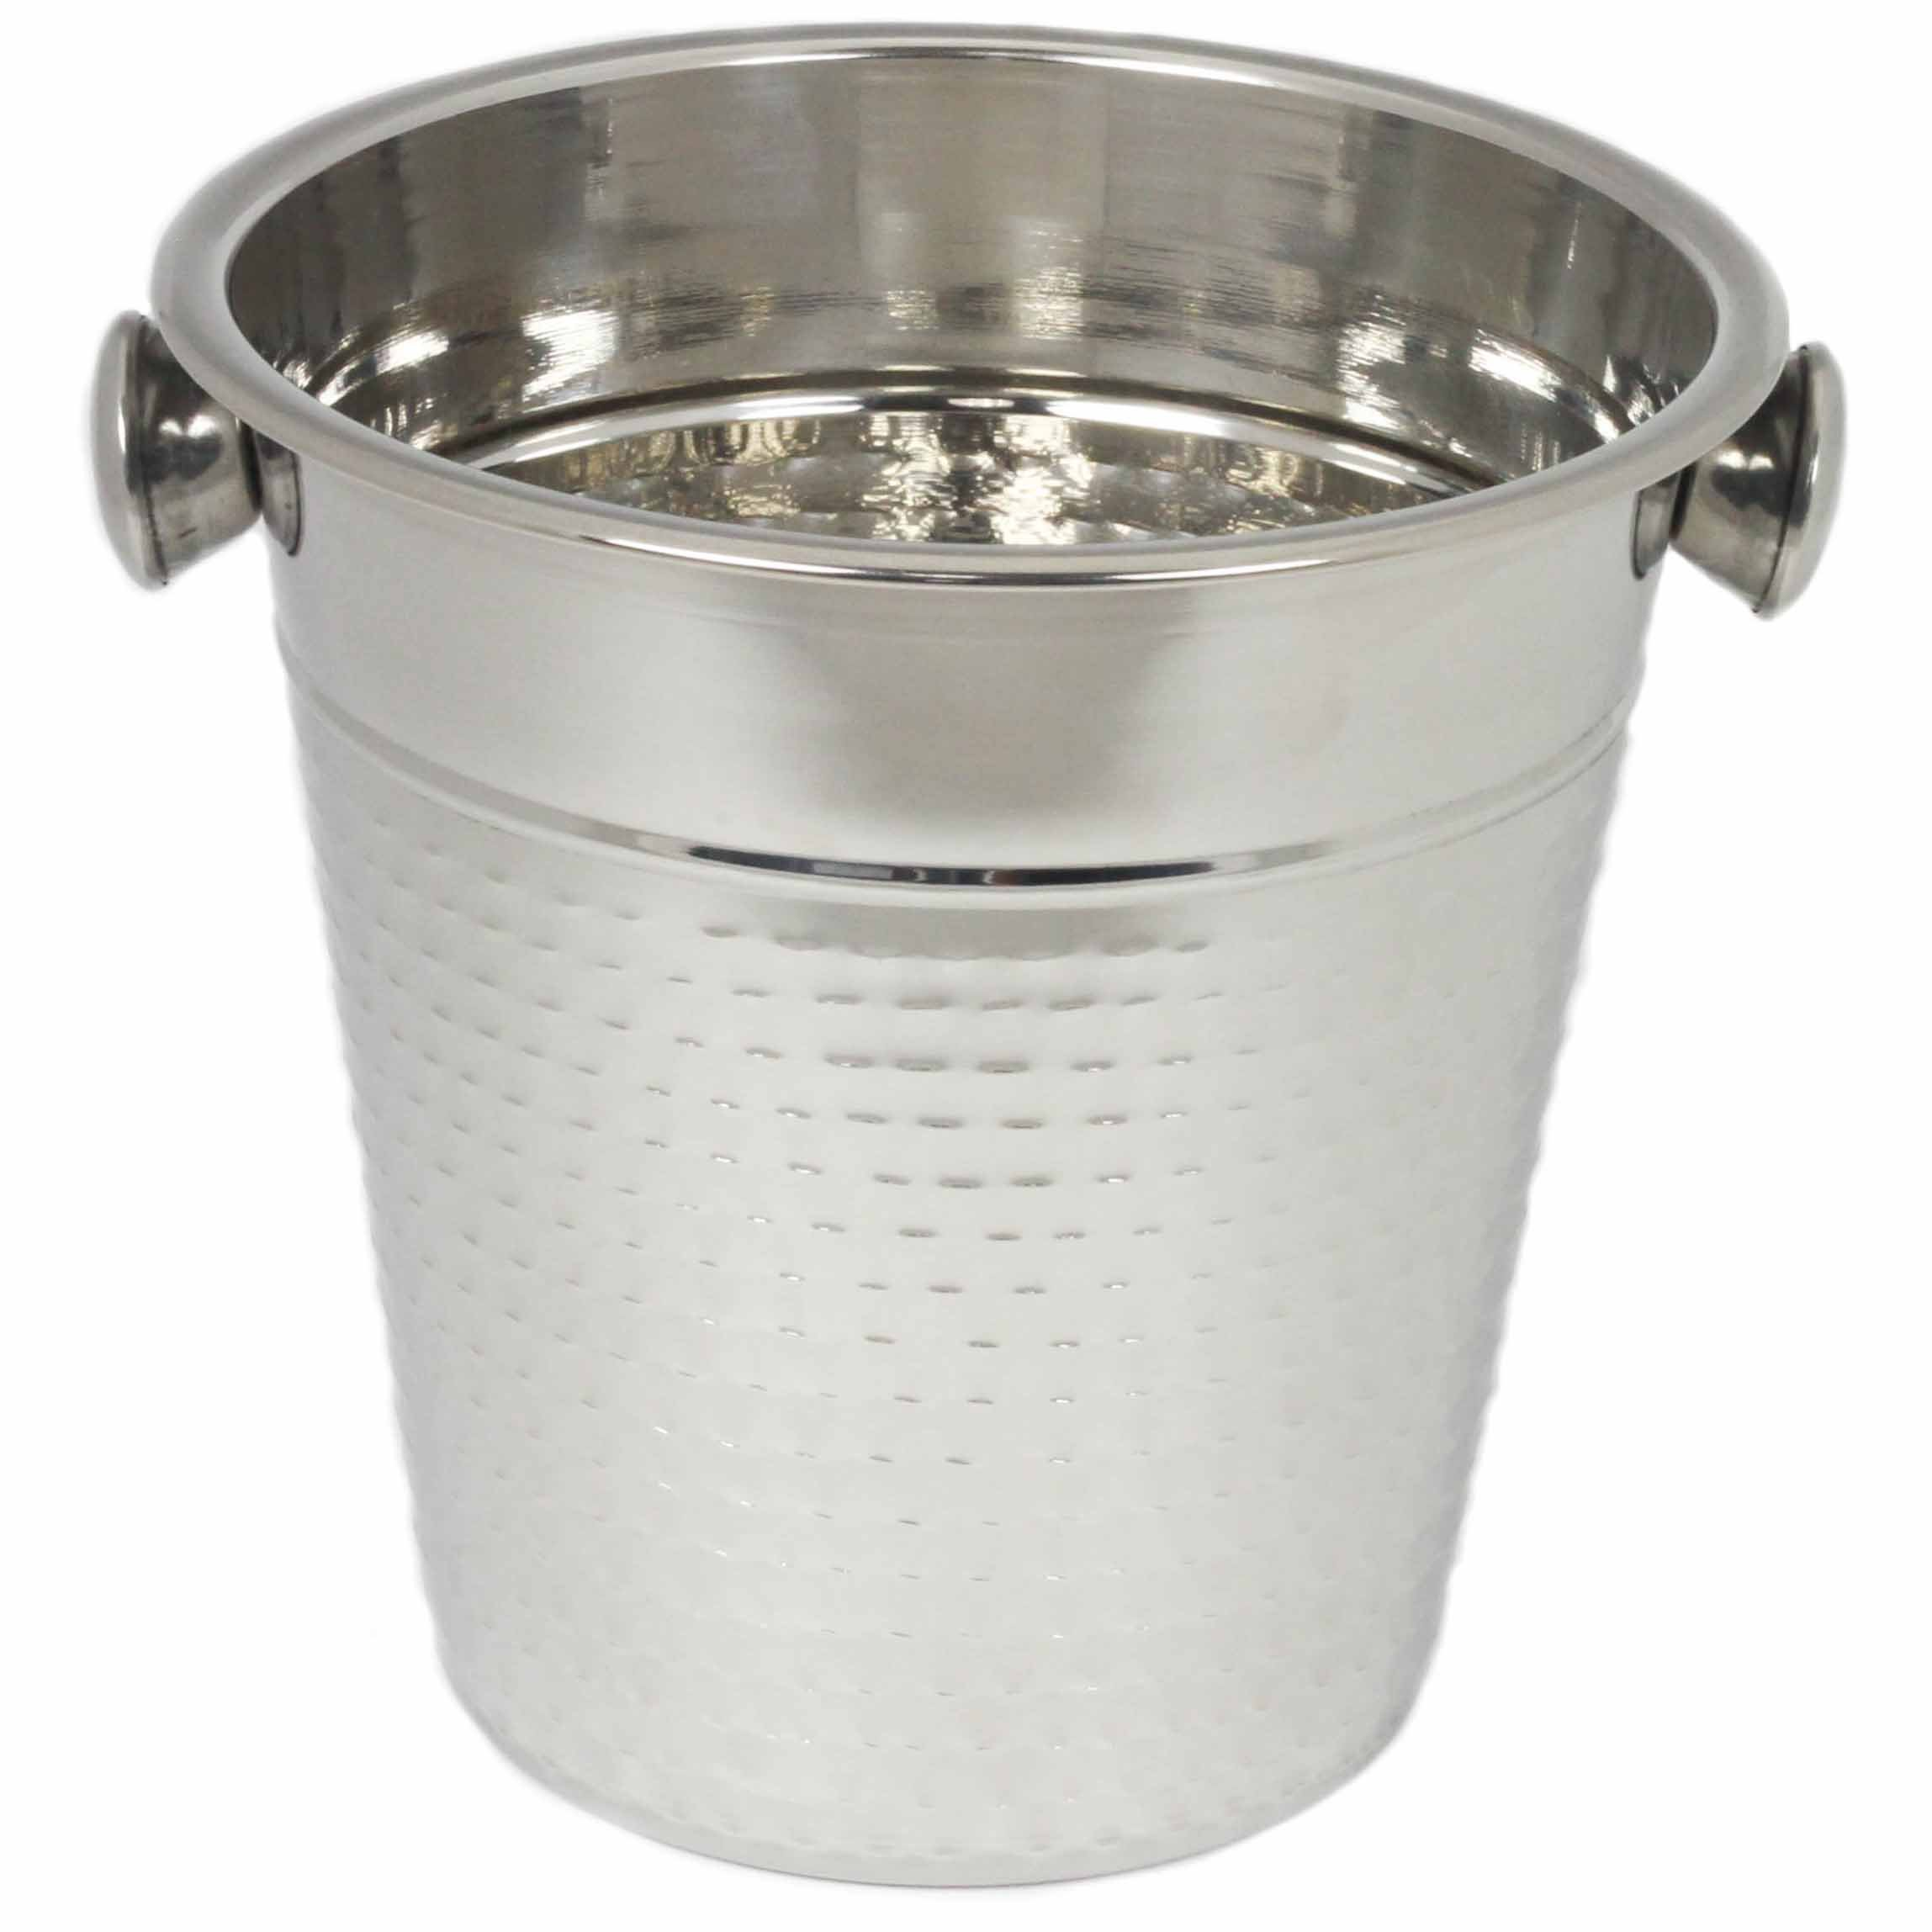 Chef Craft 21994 Hammered Champagne Bucket, Stainless Steel